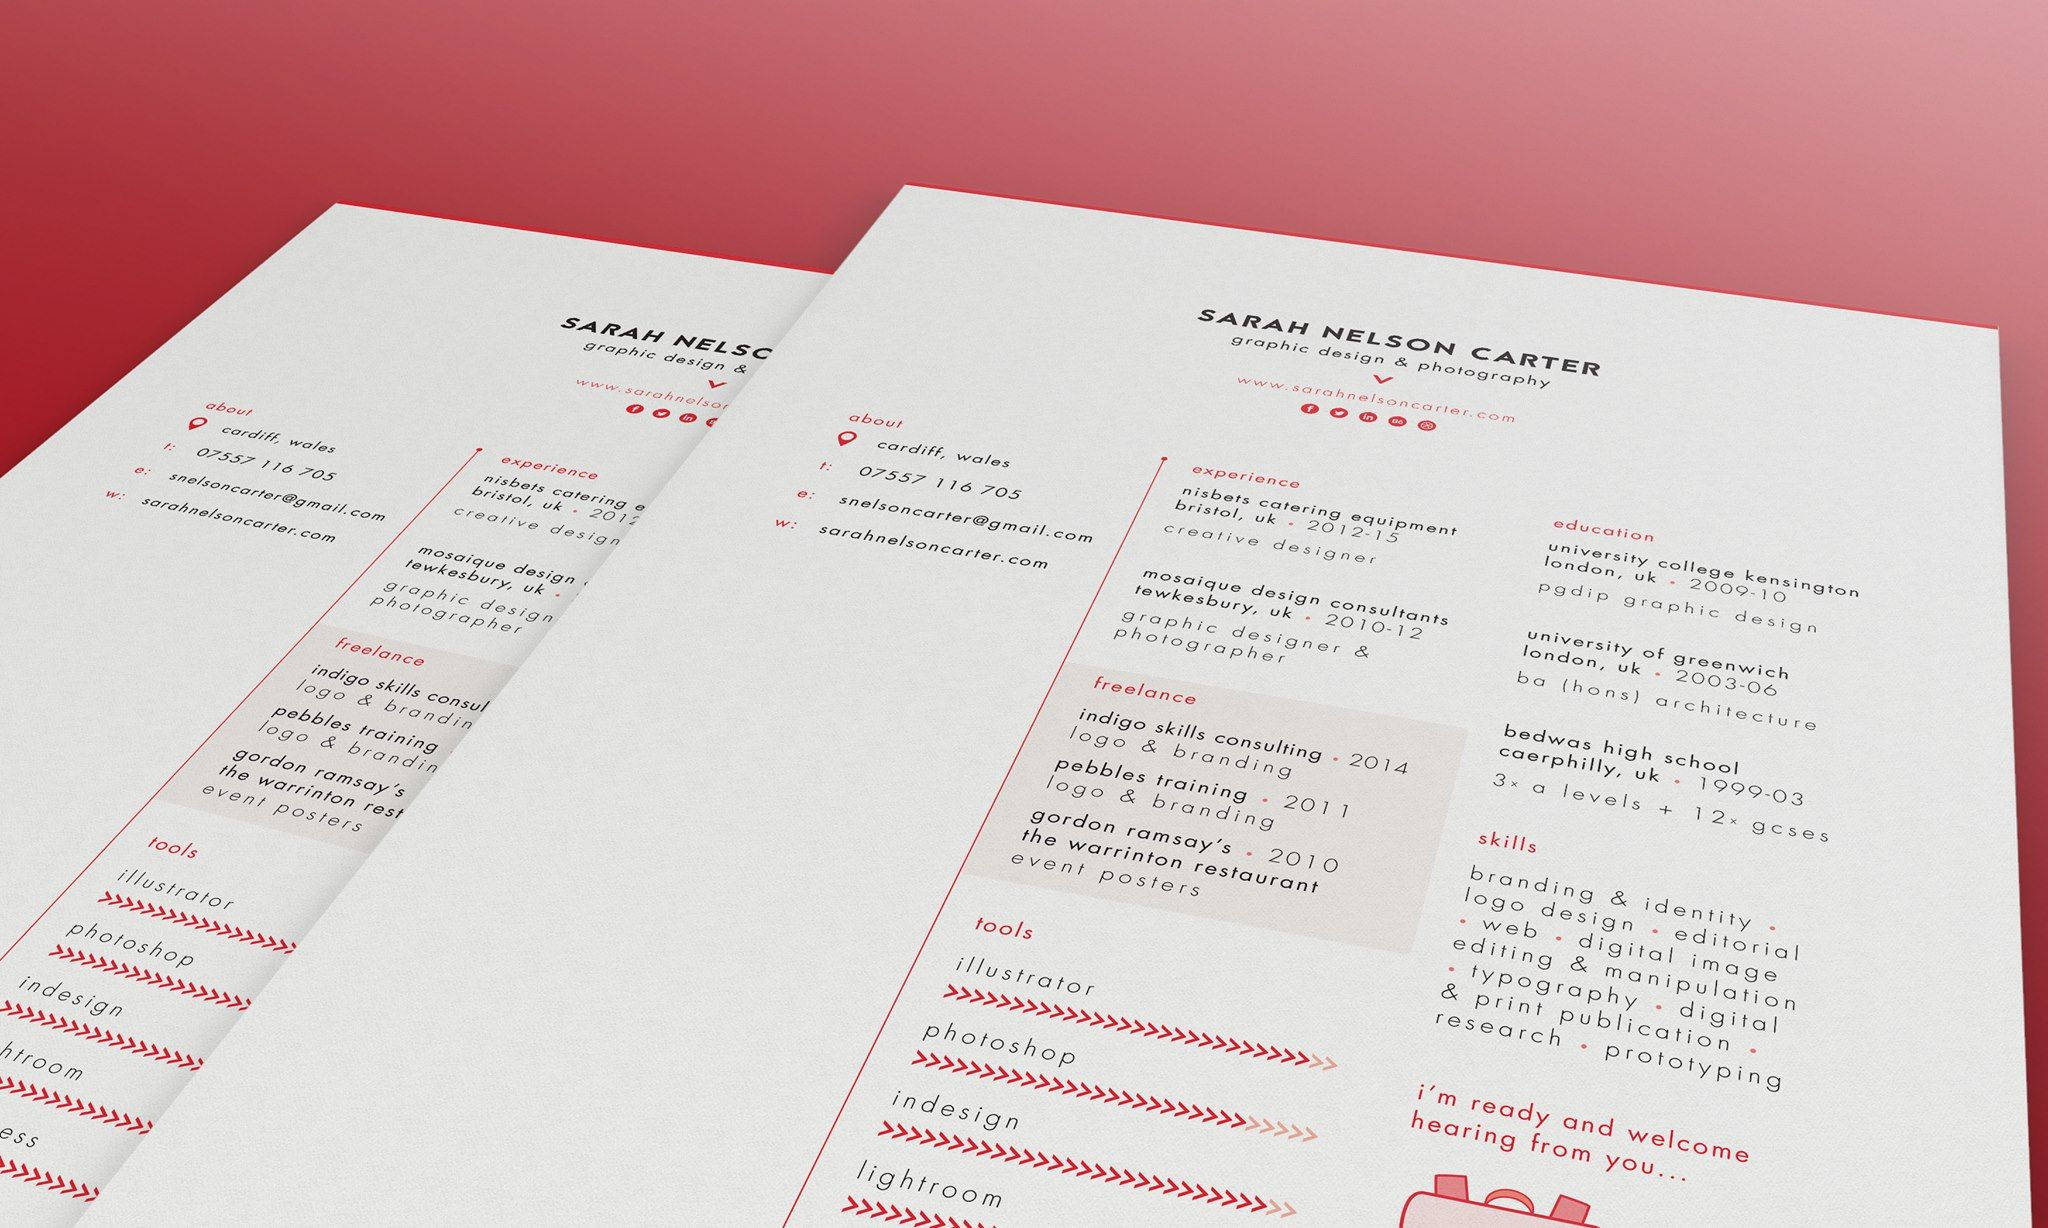 Sarah Nelson Carter Graphic Designer Resume